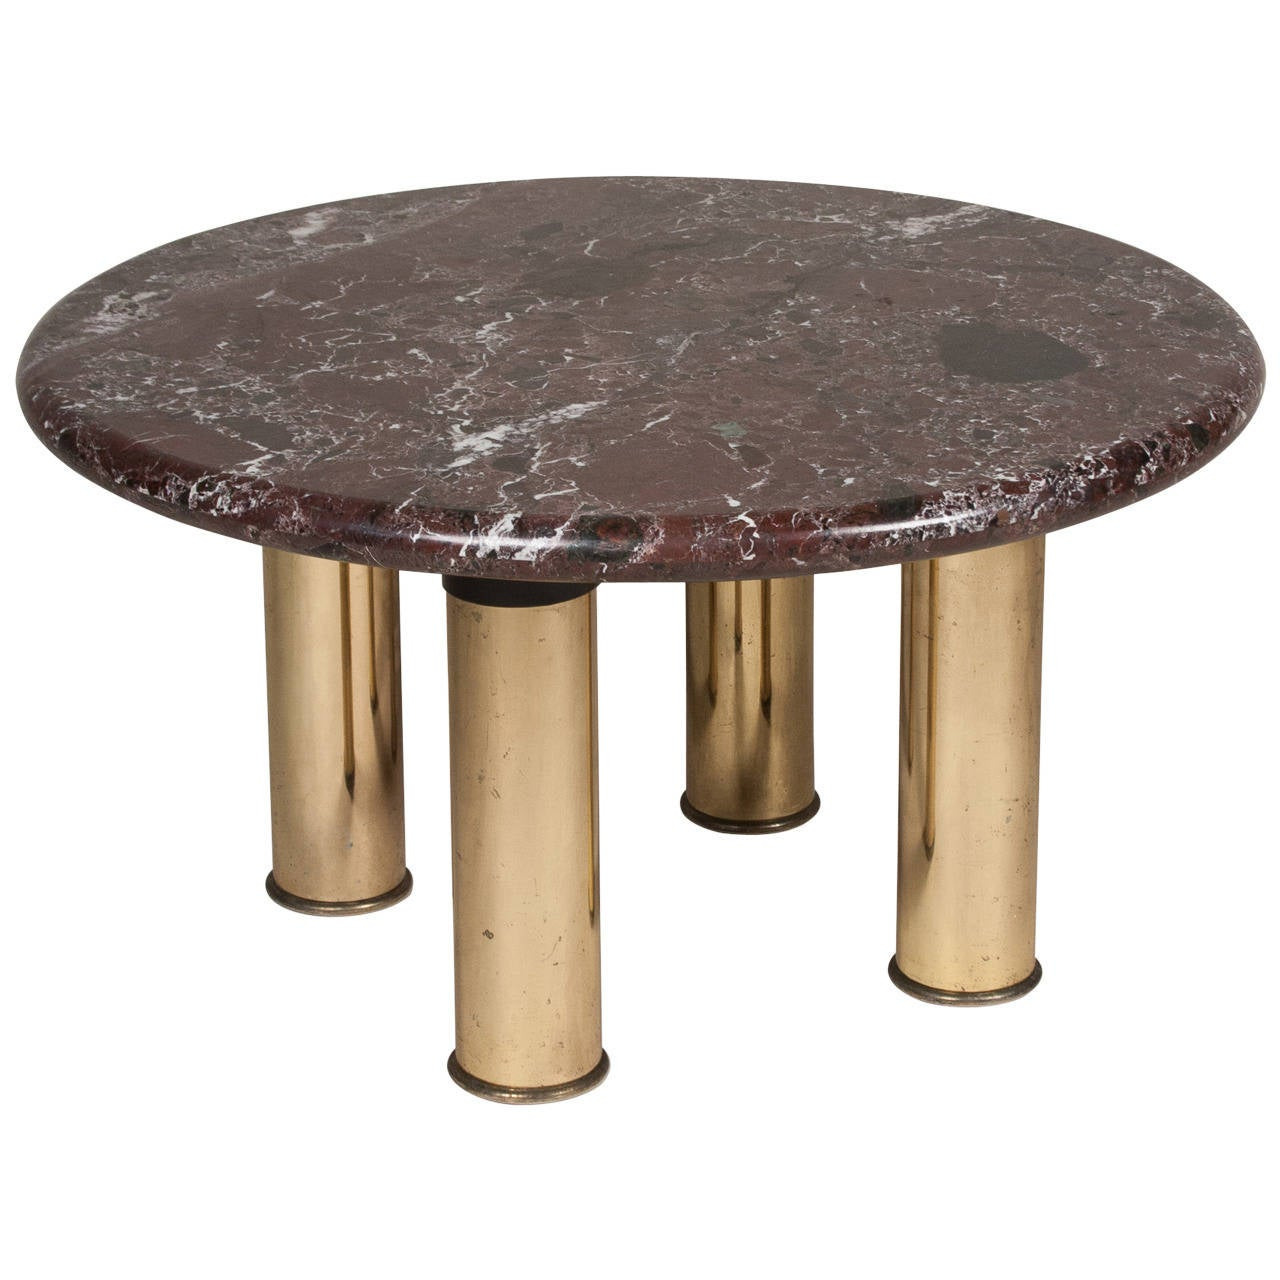 Nail Marble Top Coffee Table: Marble-Top Circular End Table At 1stdibs